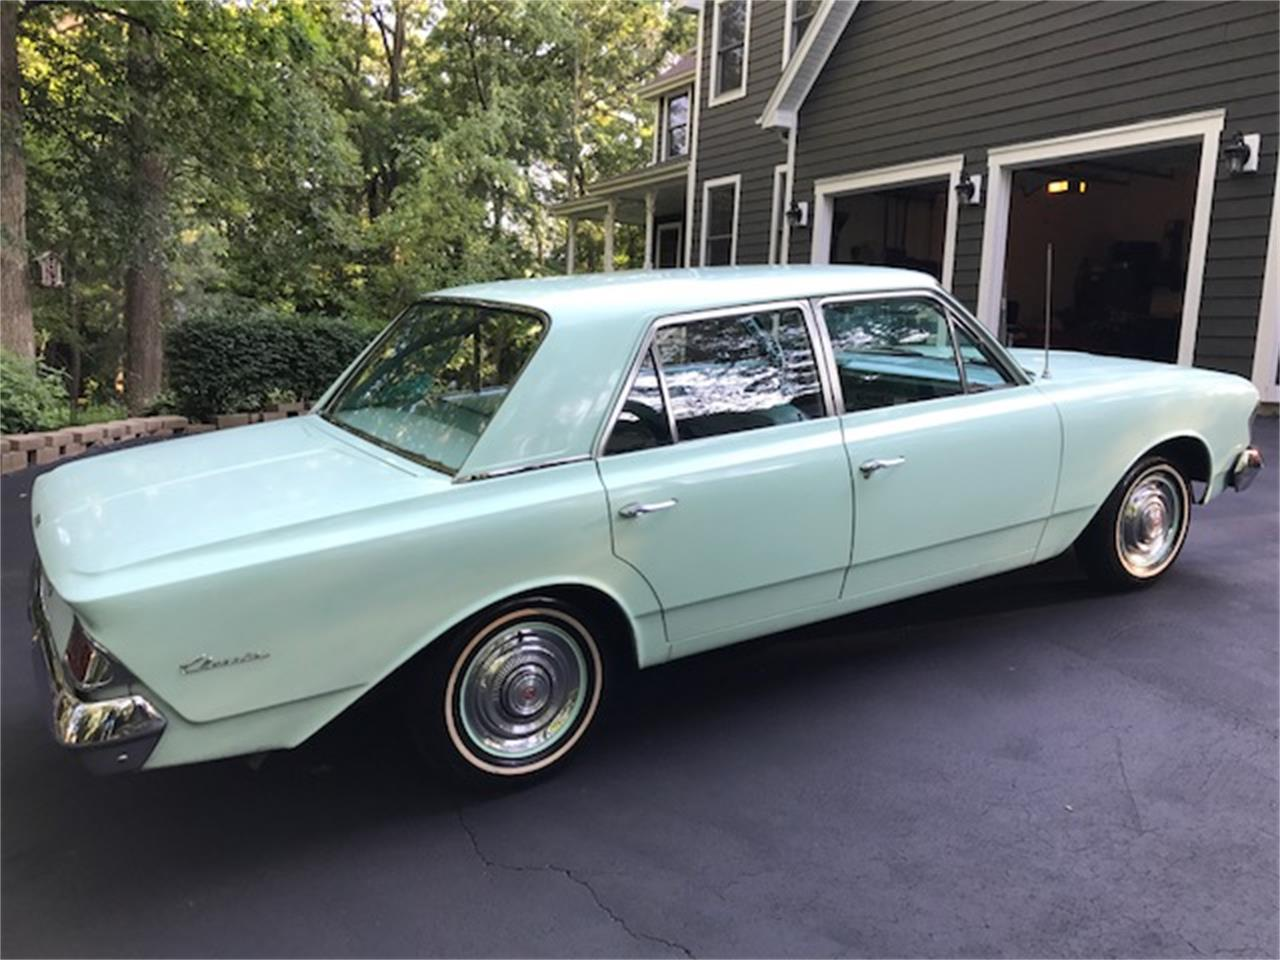 Large Picture of 1963 Rambler Classic 550 located in Illinois Offered by a Private Seller - LCY3